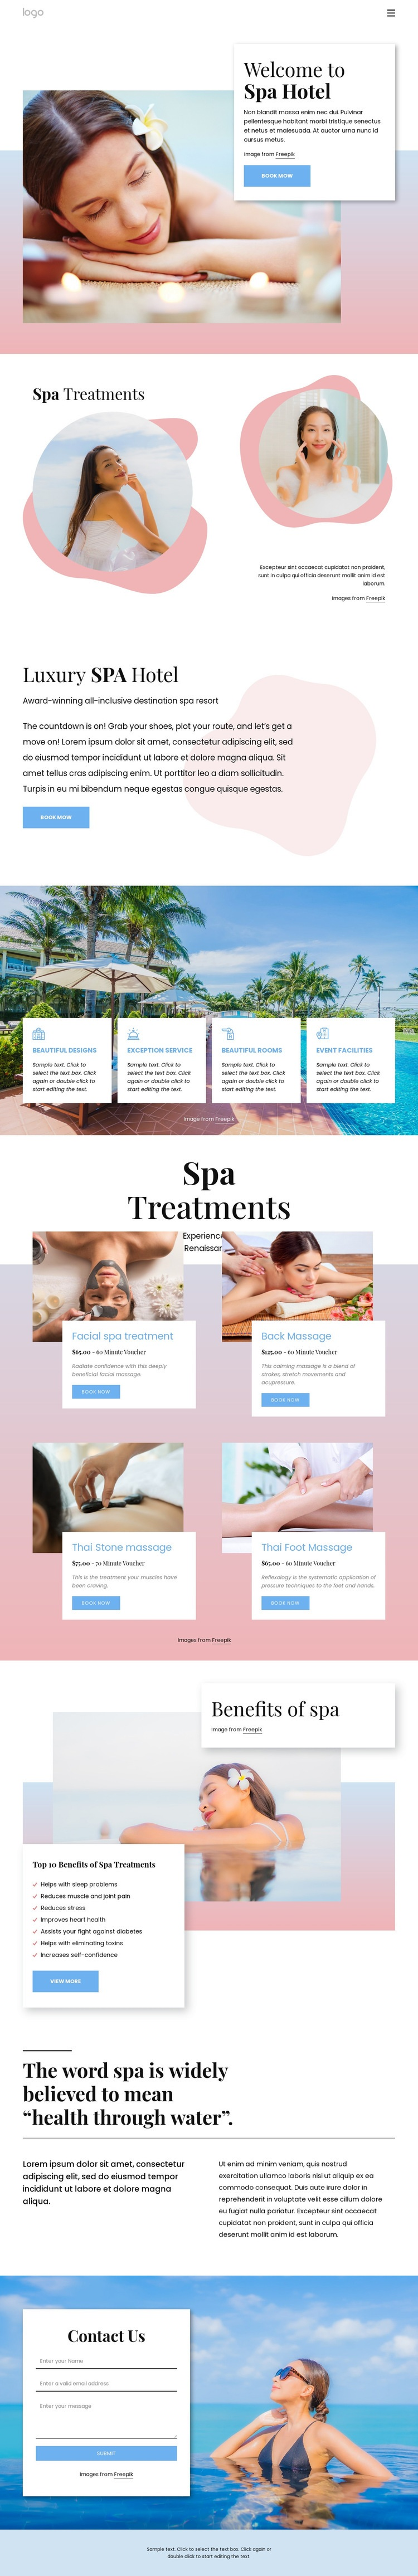 Spa boutique hotel Html Code Example